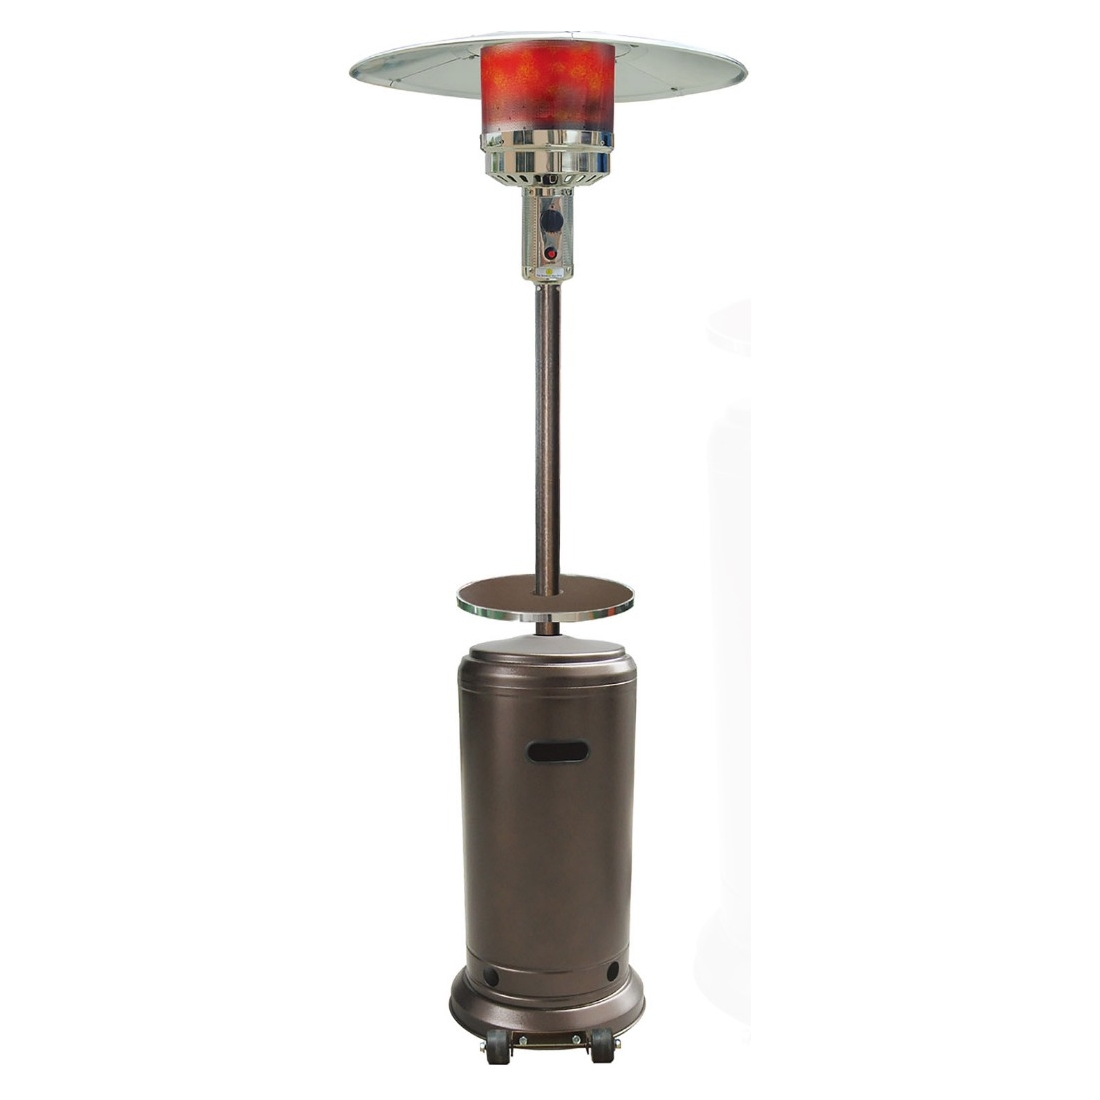 Hanover Outdoor 7 Ft. 41,000 BTU Steel Umbrella Propane Patio Heater